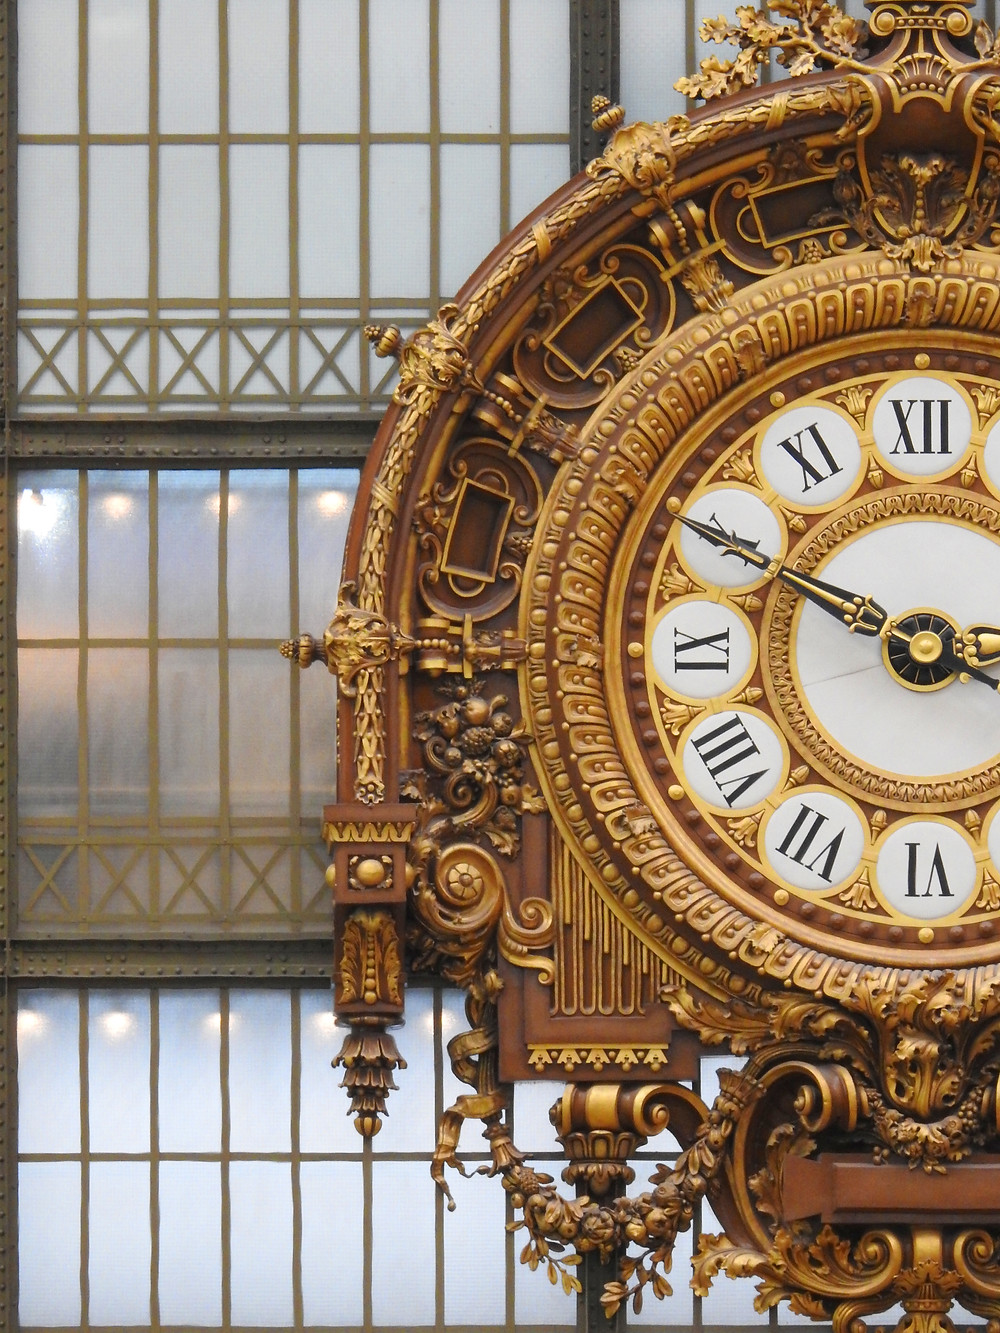 iconic gold clock in the Musee d'Orsay